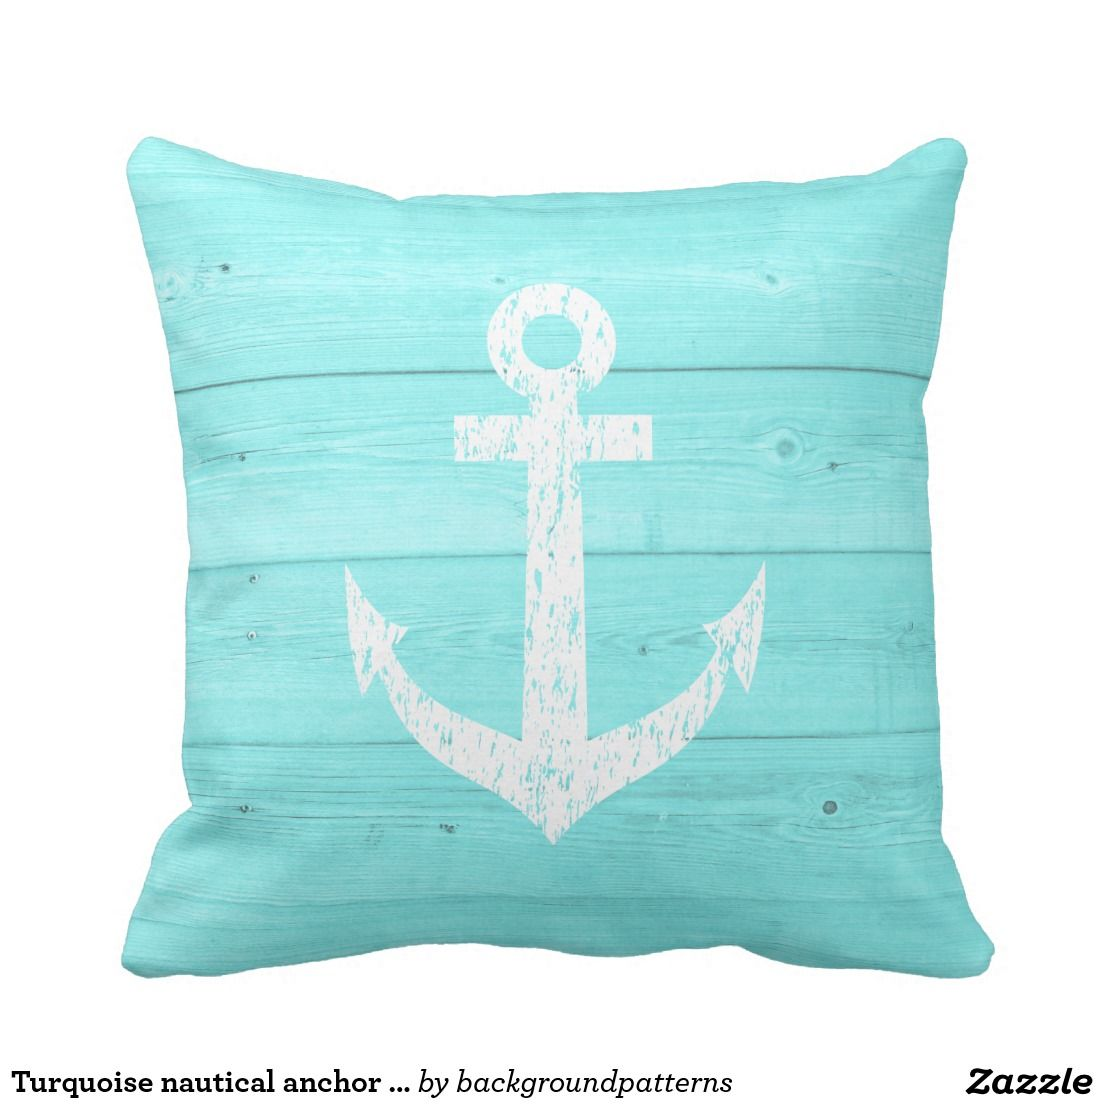 Turquoise Nautical Anchor Outdoor Throw Pillow